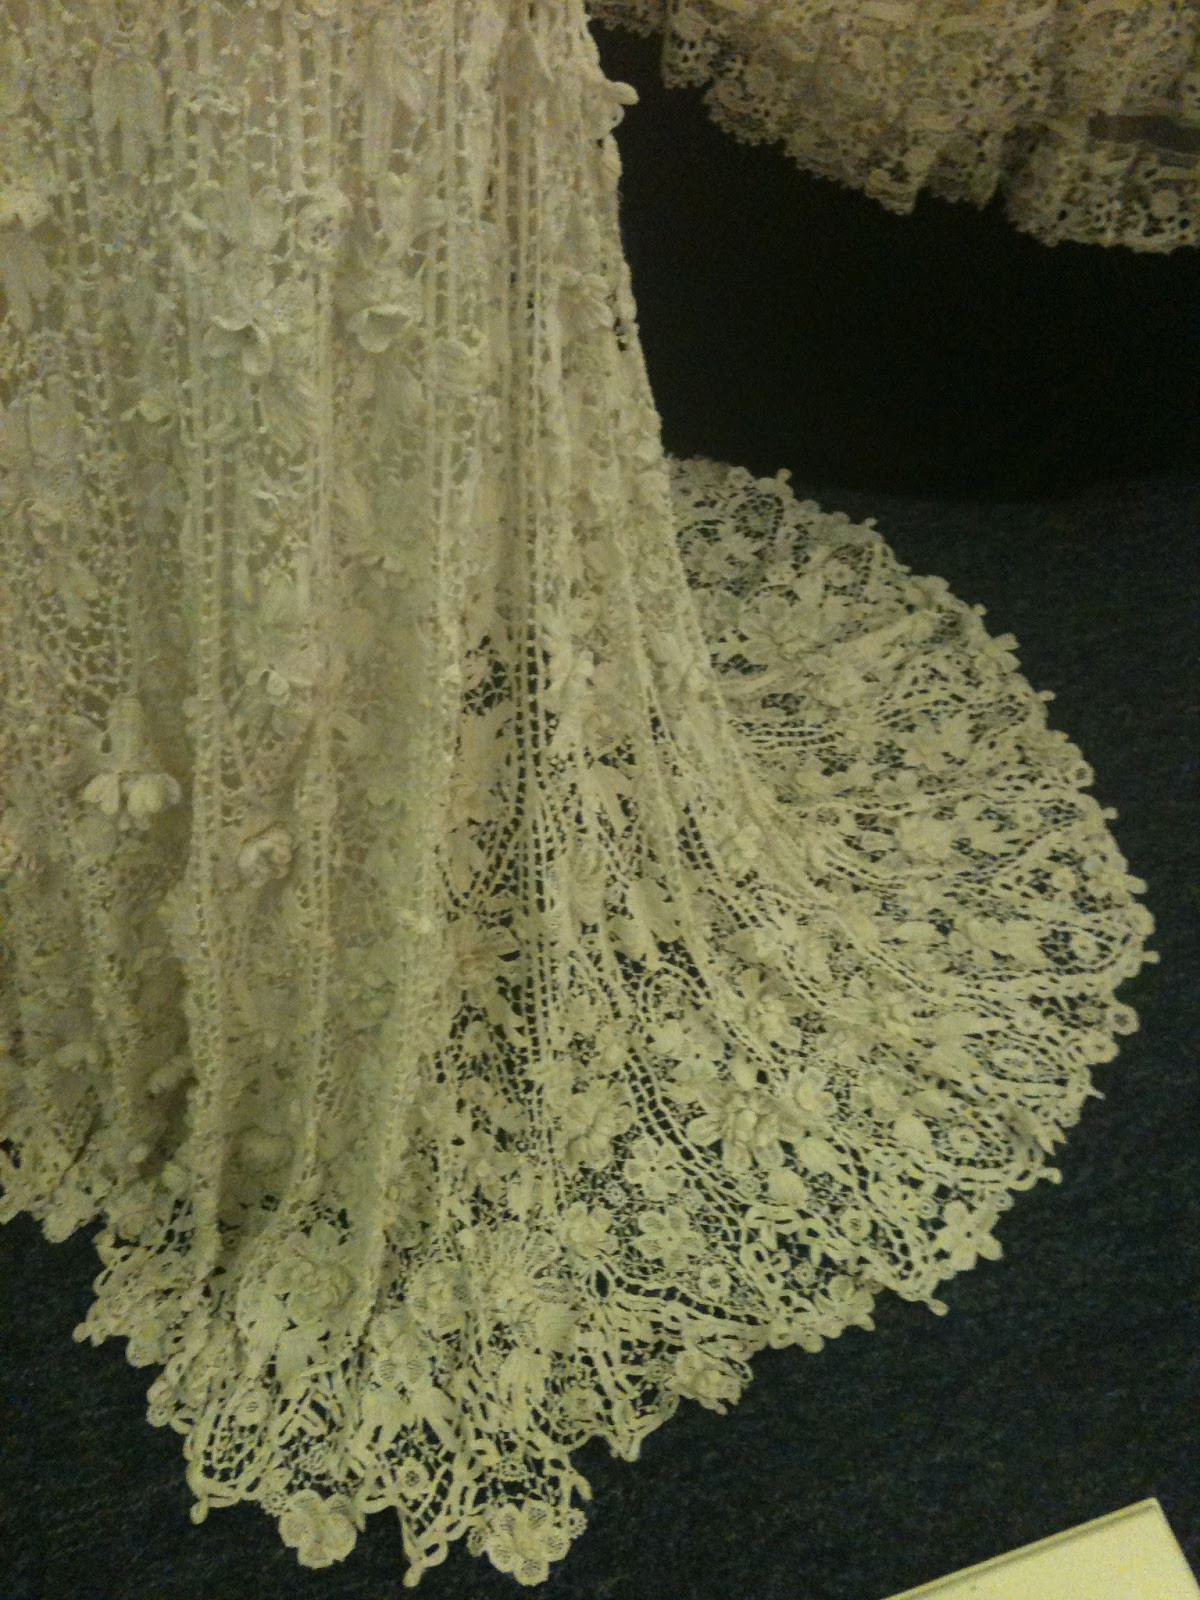 Awesome Rosemary Cathcart Antique Lace and Vintage Fashion the Irish Lace Of Incredible 40 Ideas Irish Lace